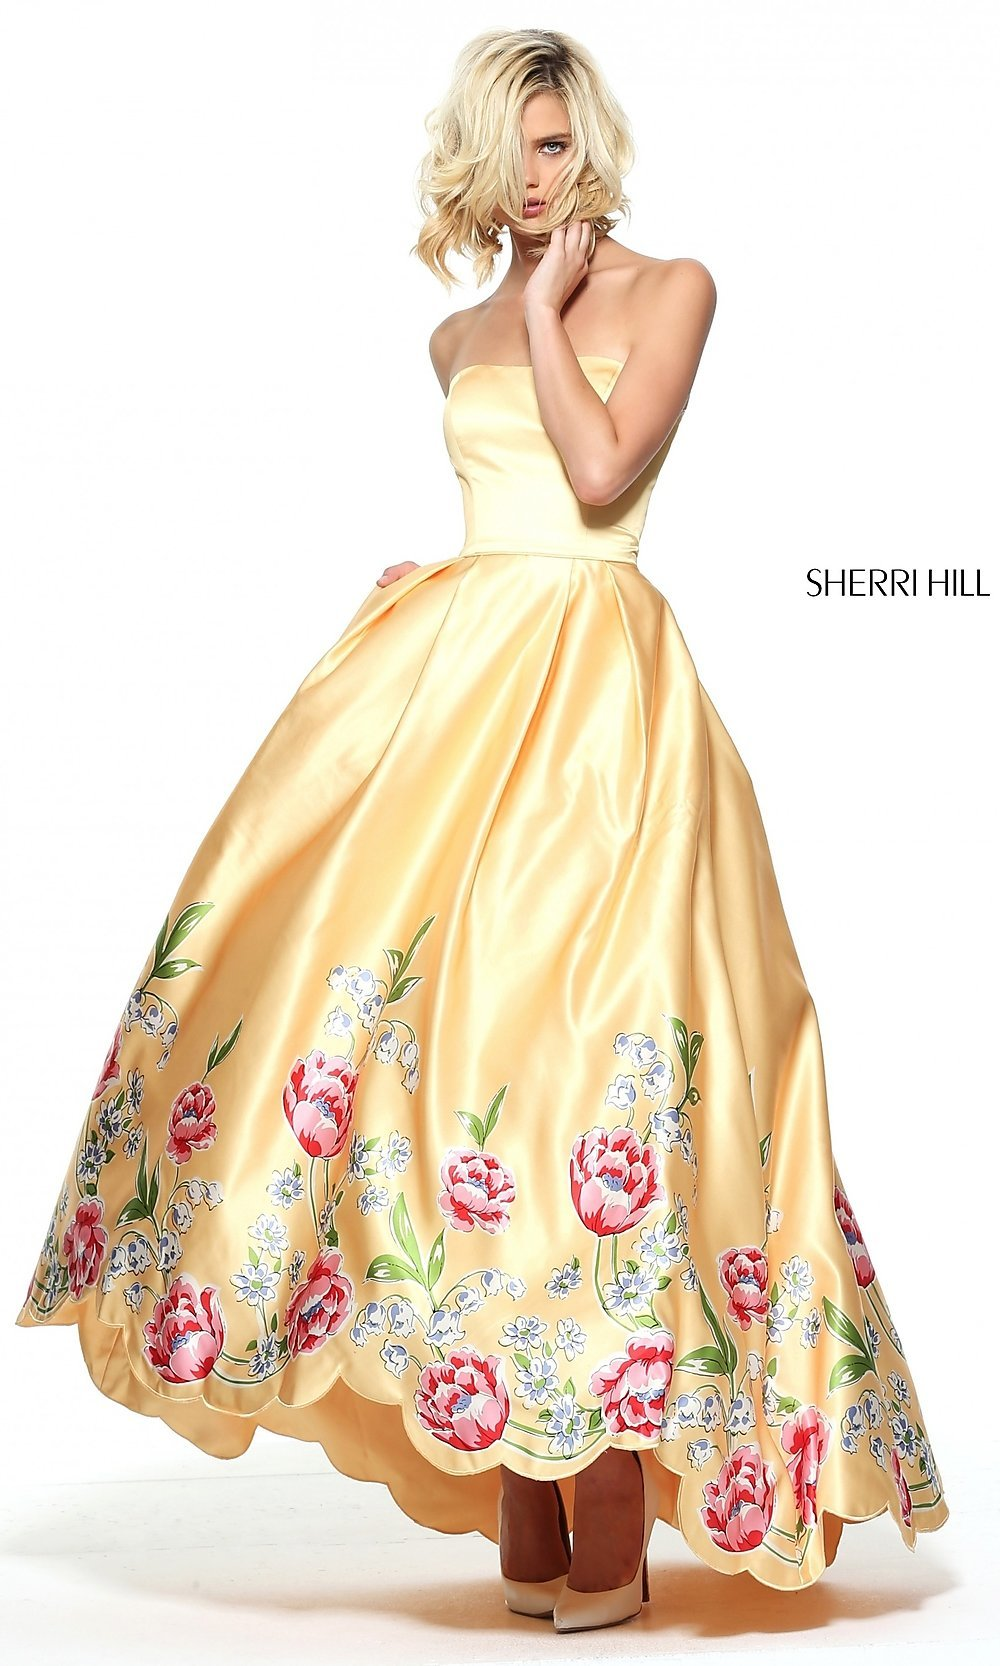 https://img.promgirl.com/_img/PGPRODUCTS/1599120/1000/yellow-pri-dress-SH-51139-a.jpg